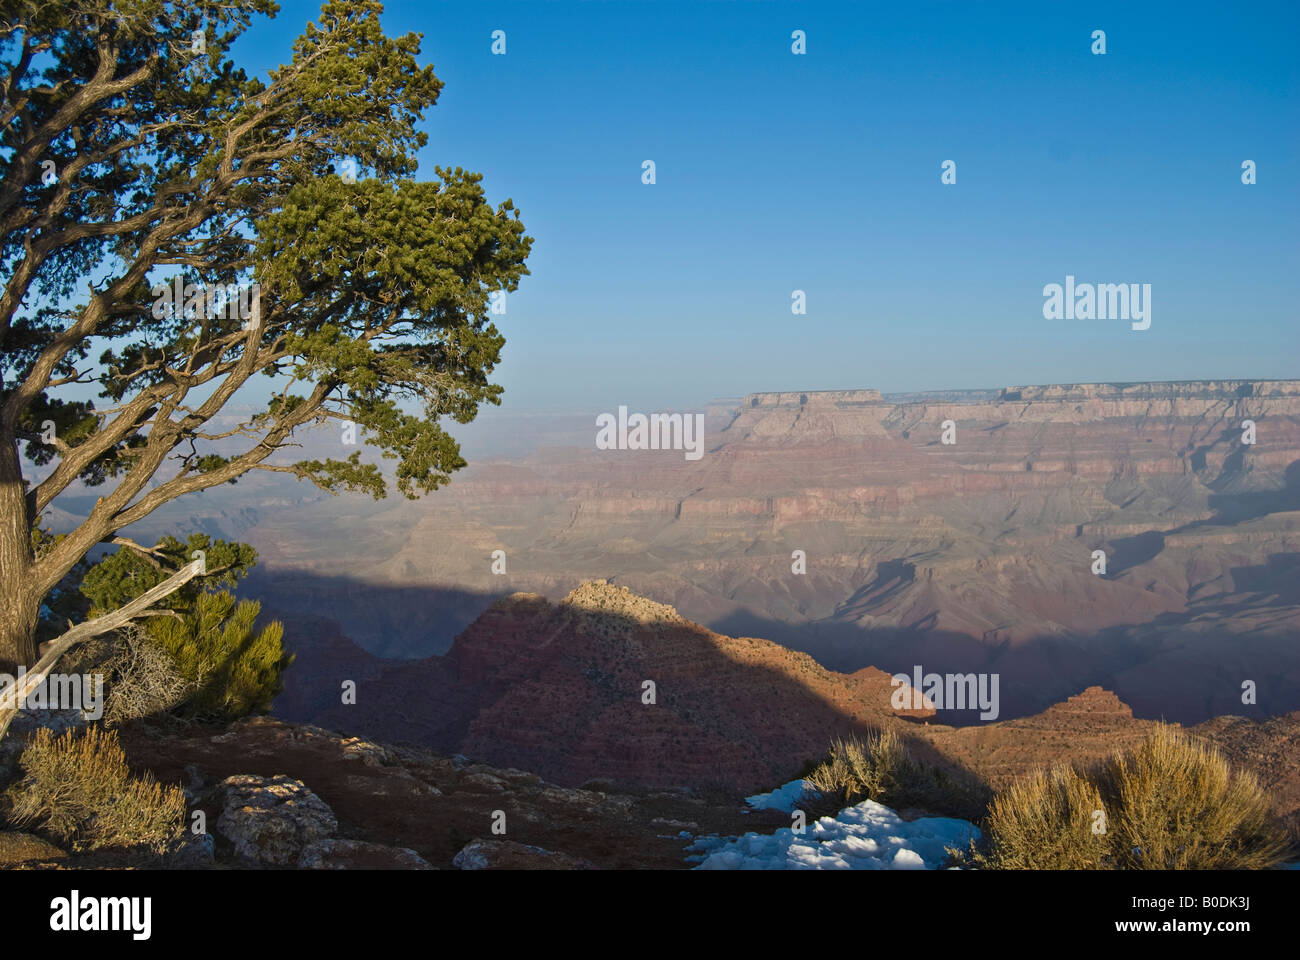 Sunrising Grand Canyon - Stock Image